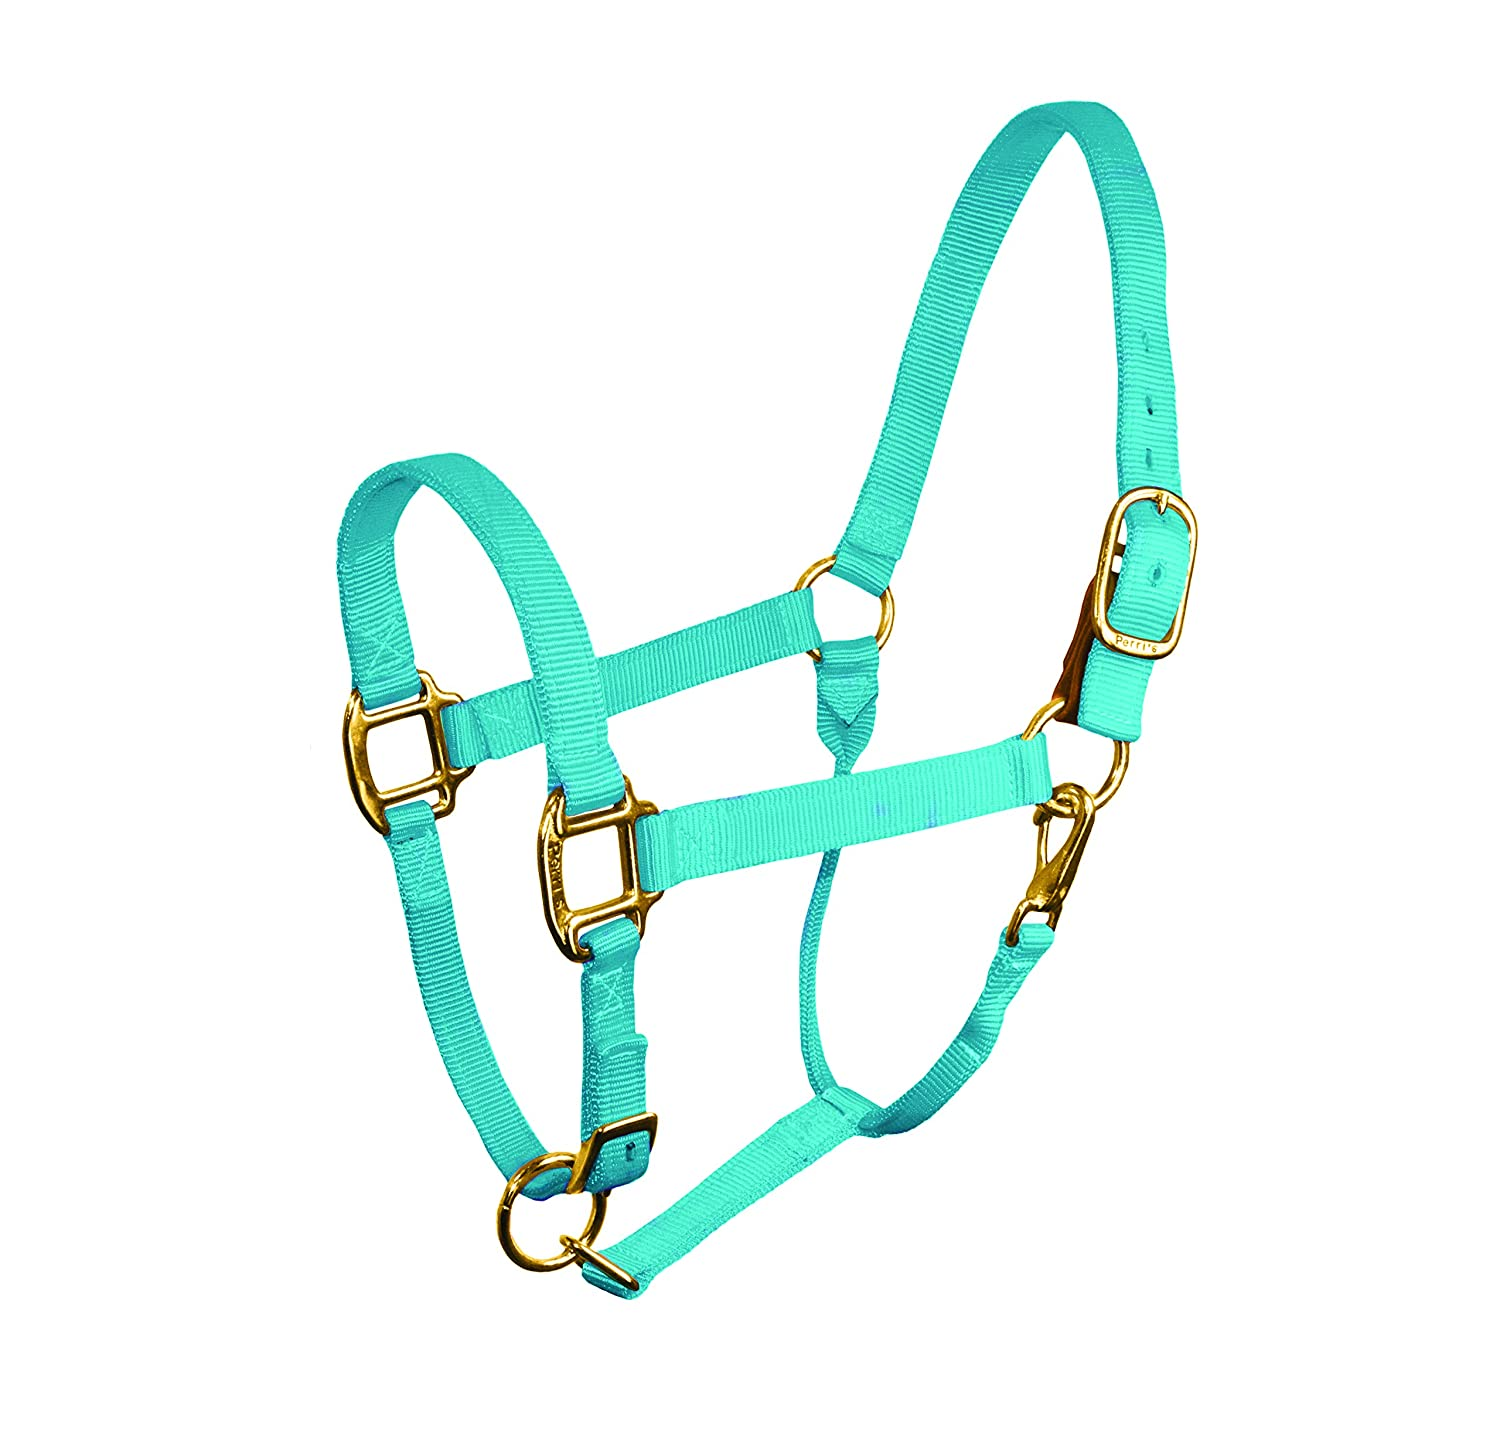 Perri's Horse Nylon Stock Halter With Safety Tab, Turquoise